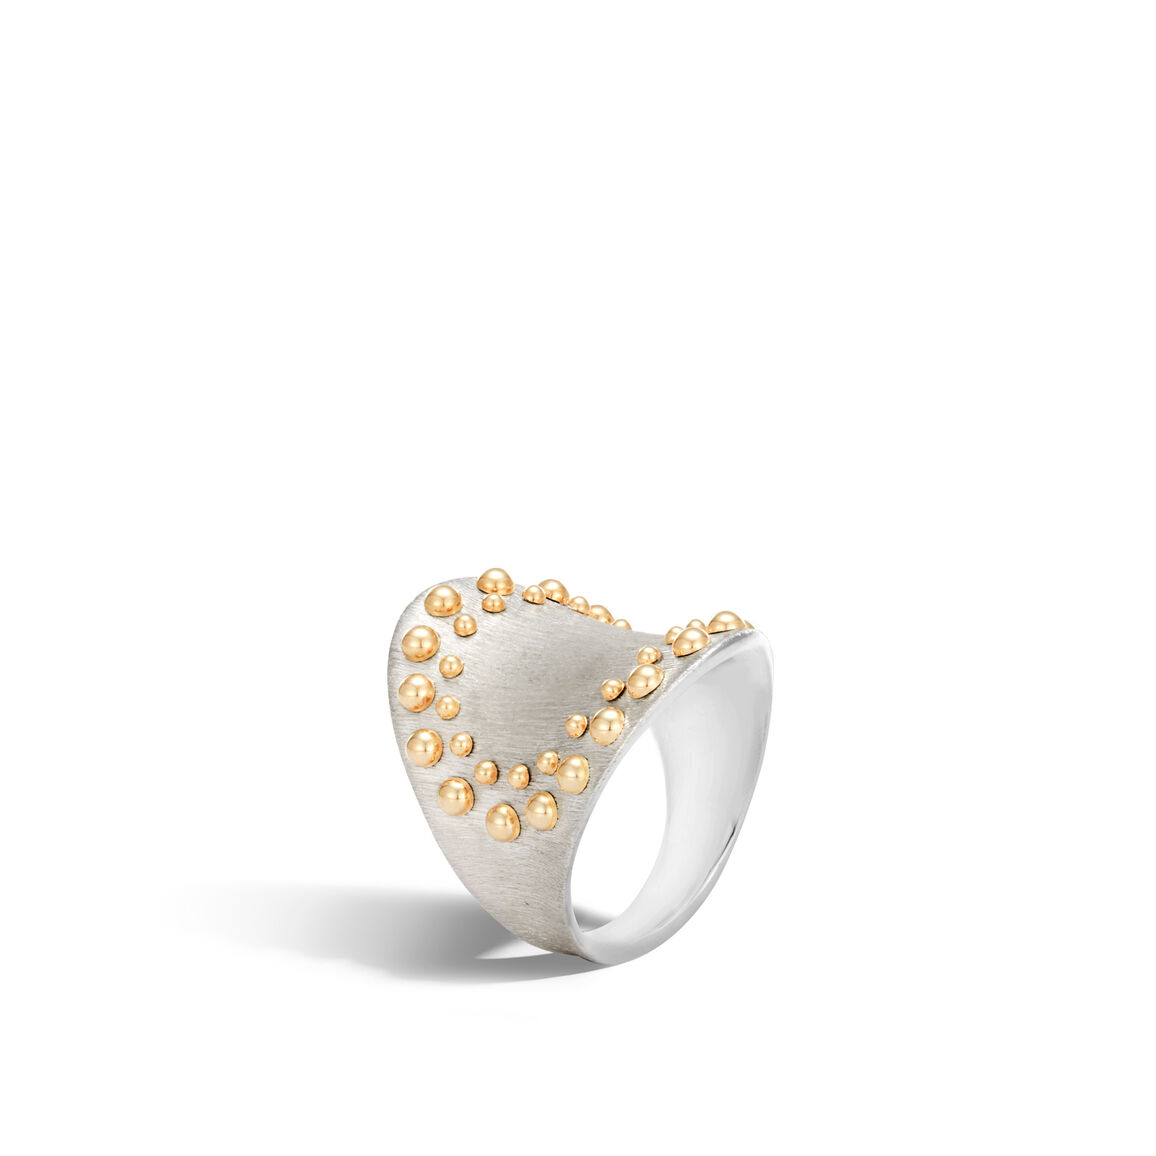 Dot Saddle Ring in Brushed Silver and 18K Gold